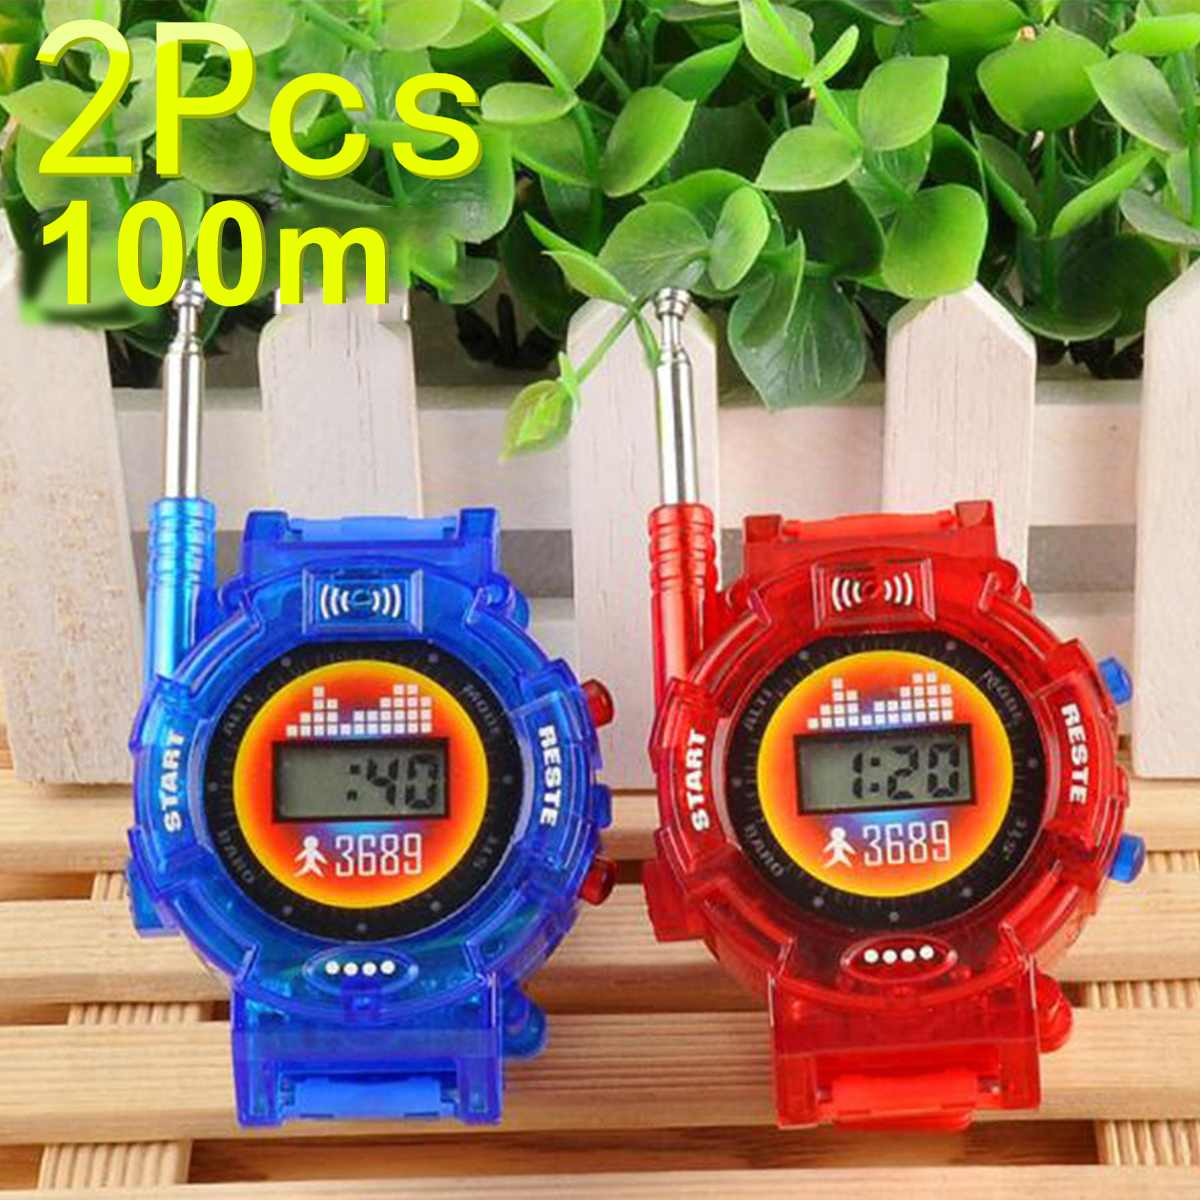 2Pcs Walkie Talkies 10KM Communication Distance Watch Child Kids Watches Two-way Radios Interphone Clock Gift